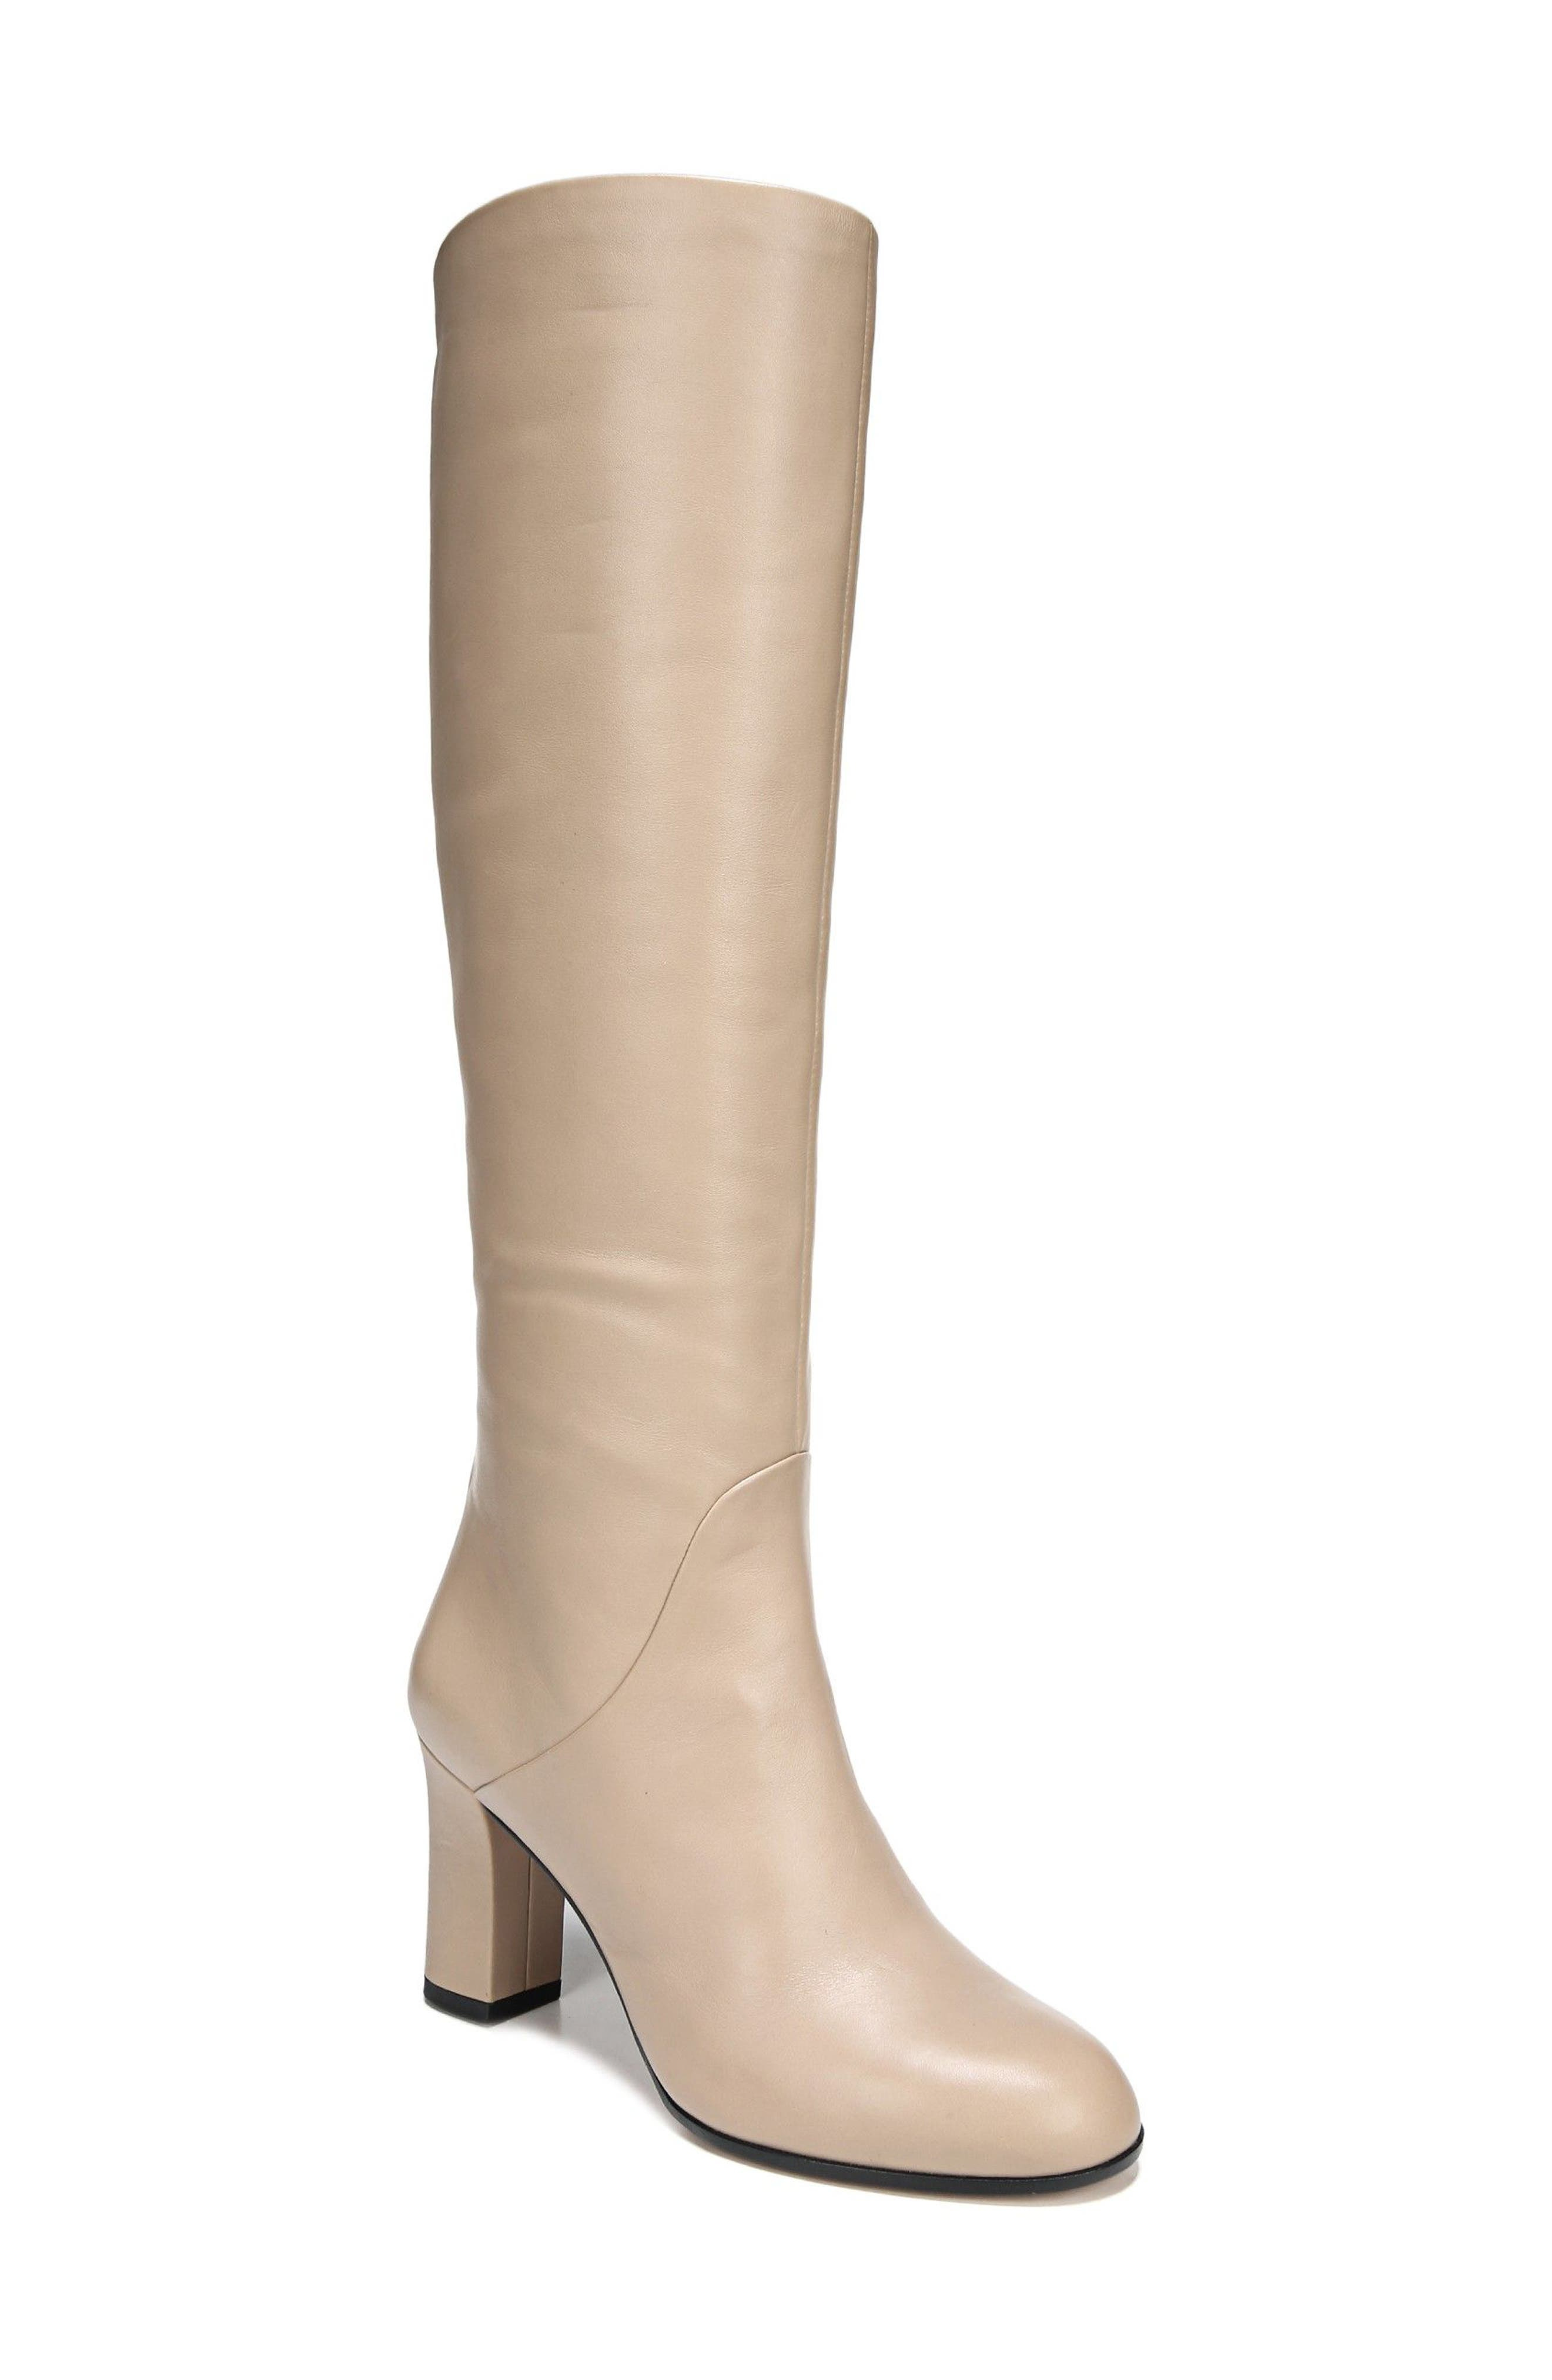 Main Image - Via Spiga Soho Knee High Boot (Women)